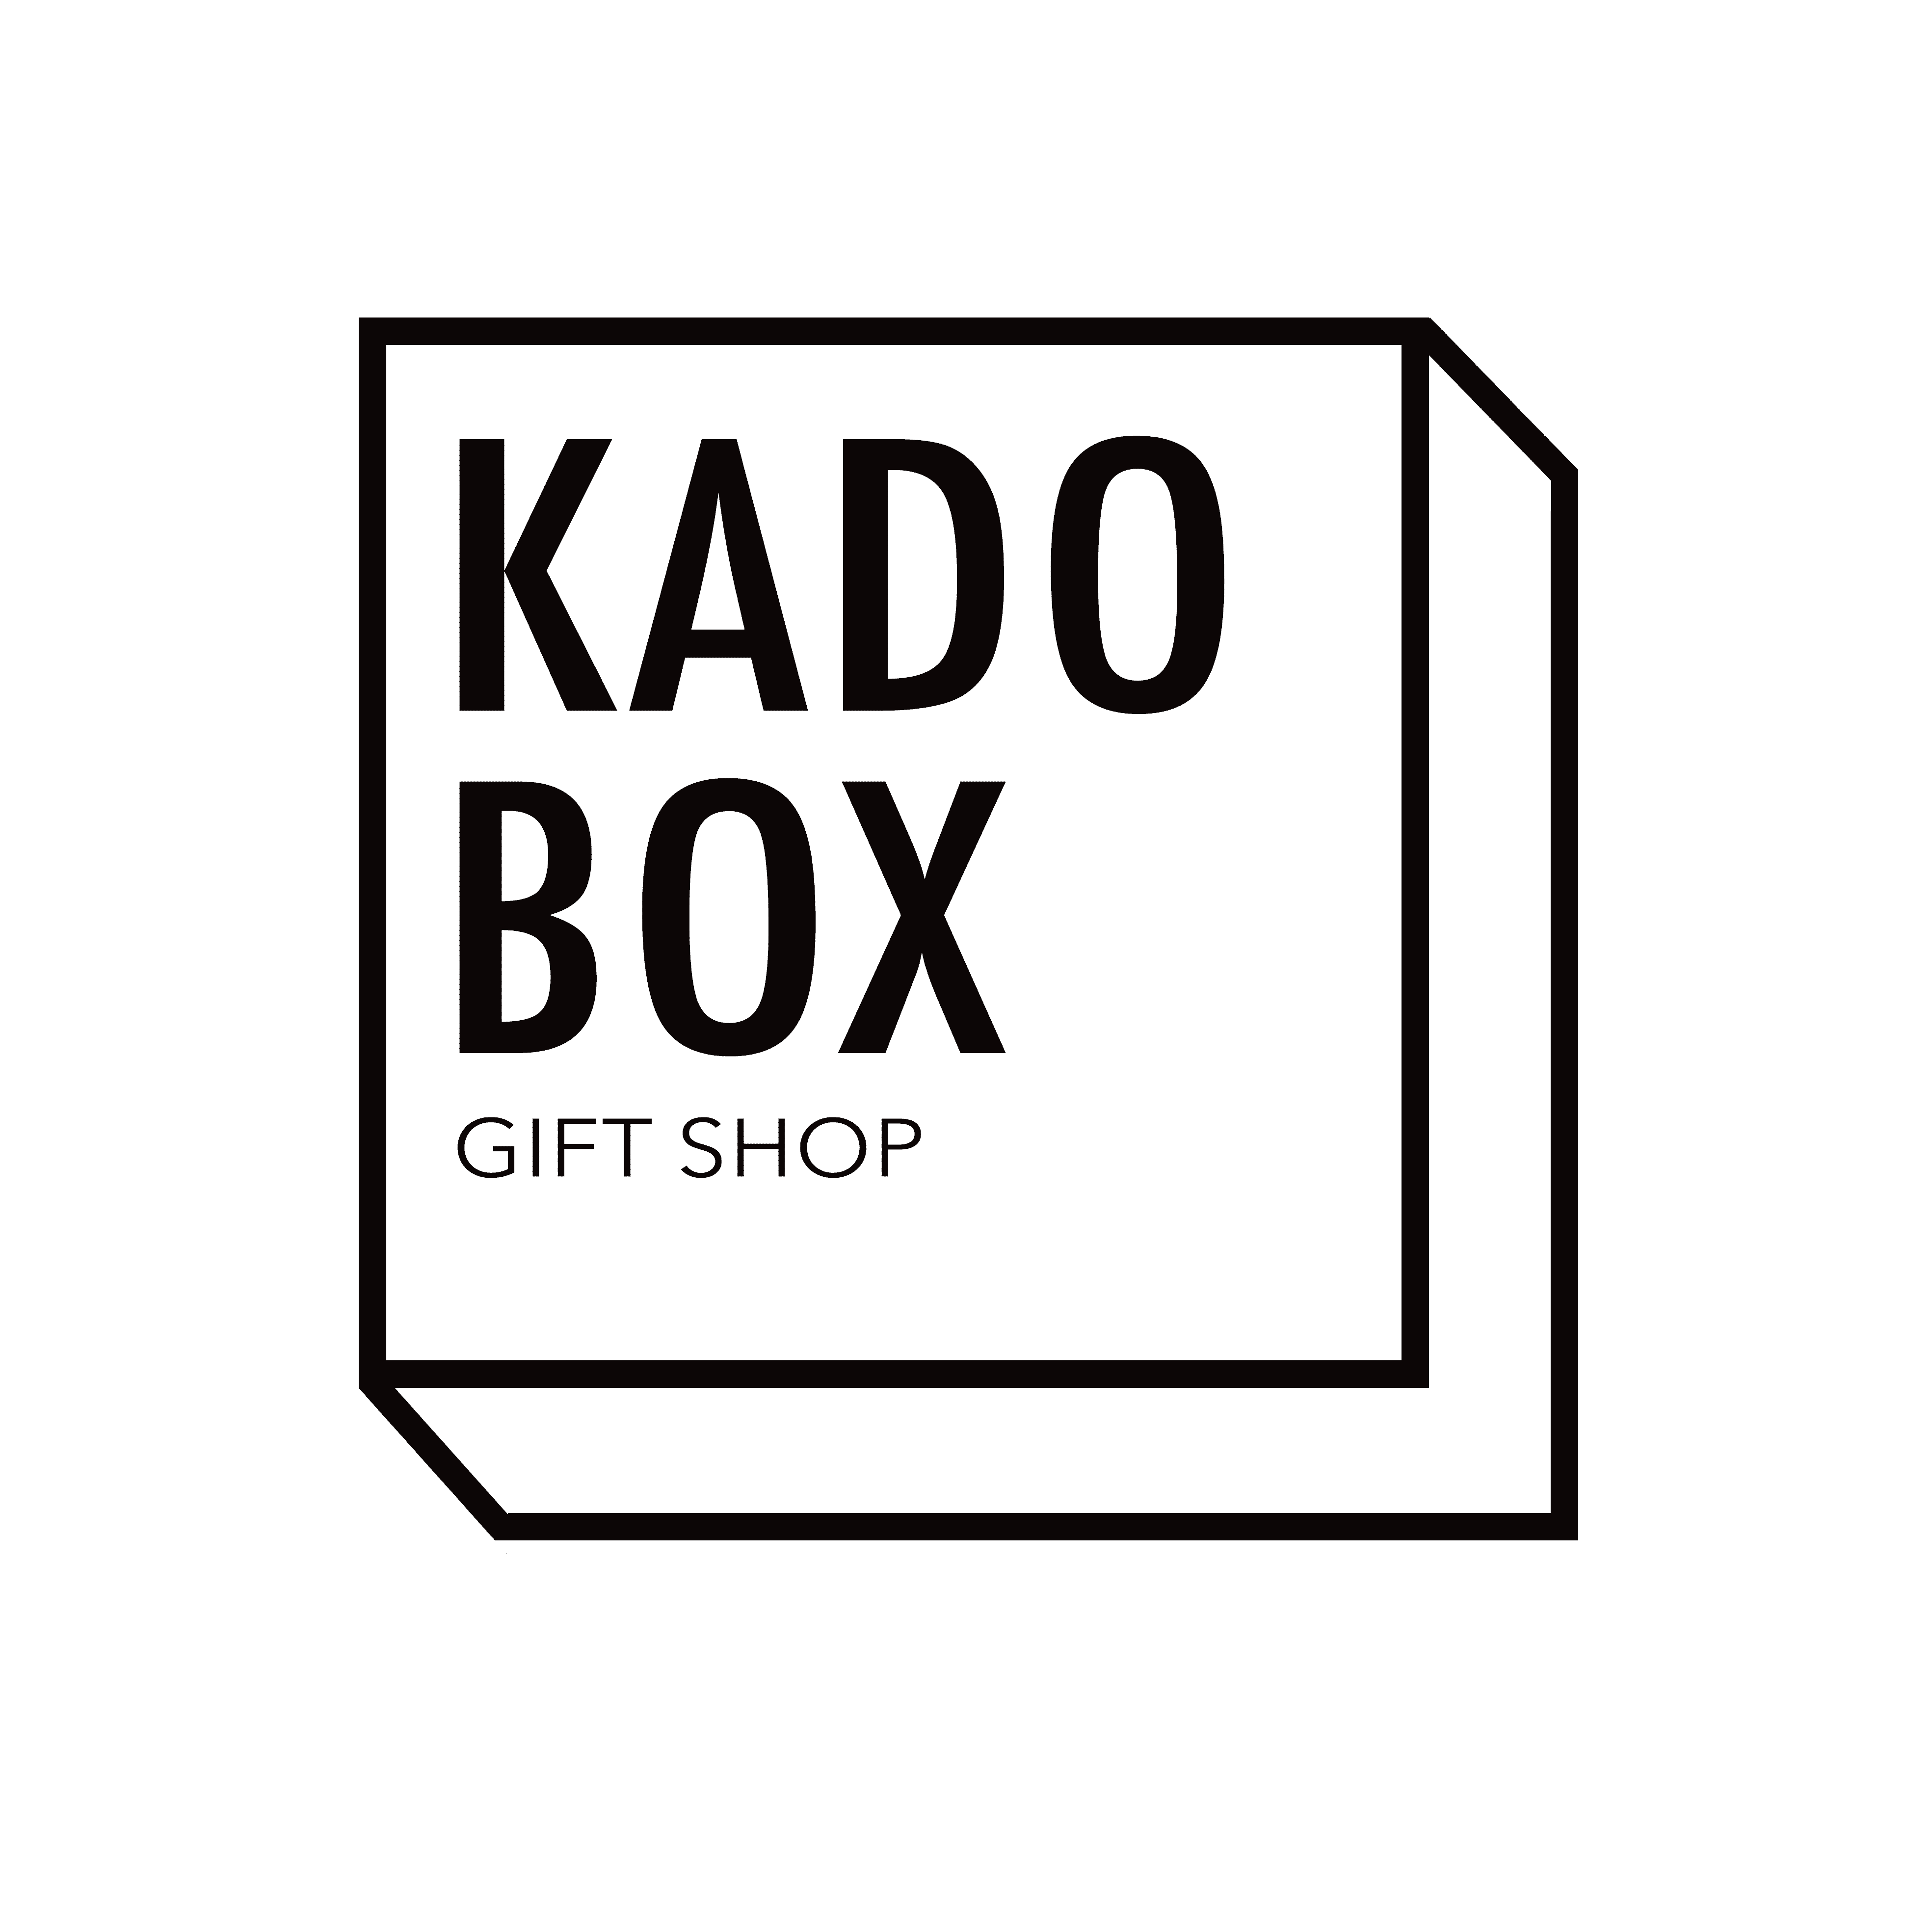 Kadobox